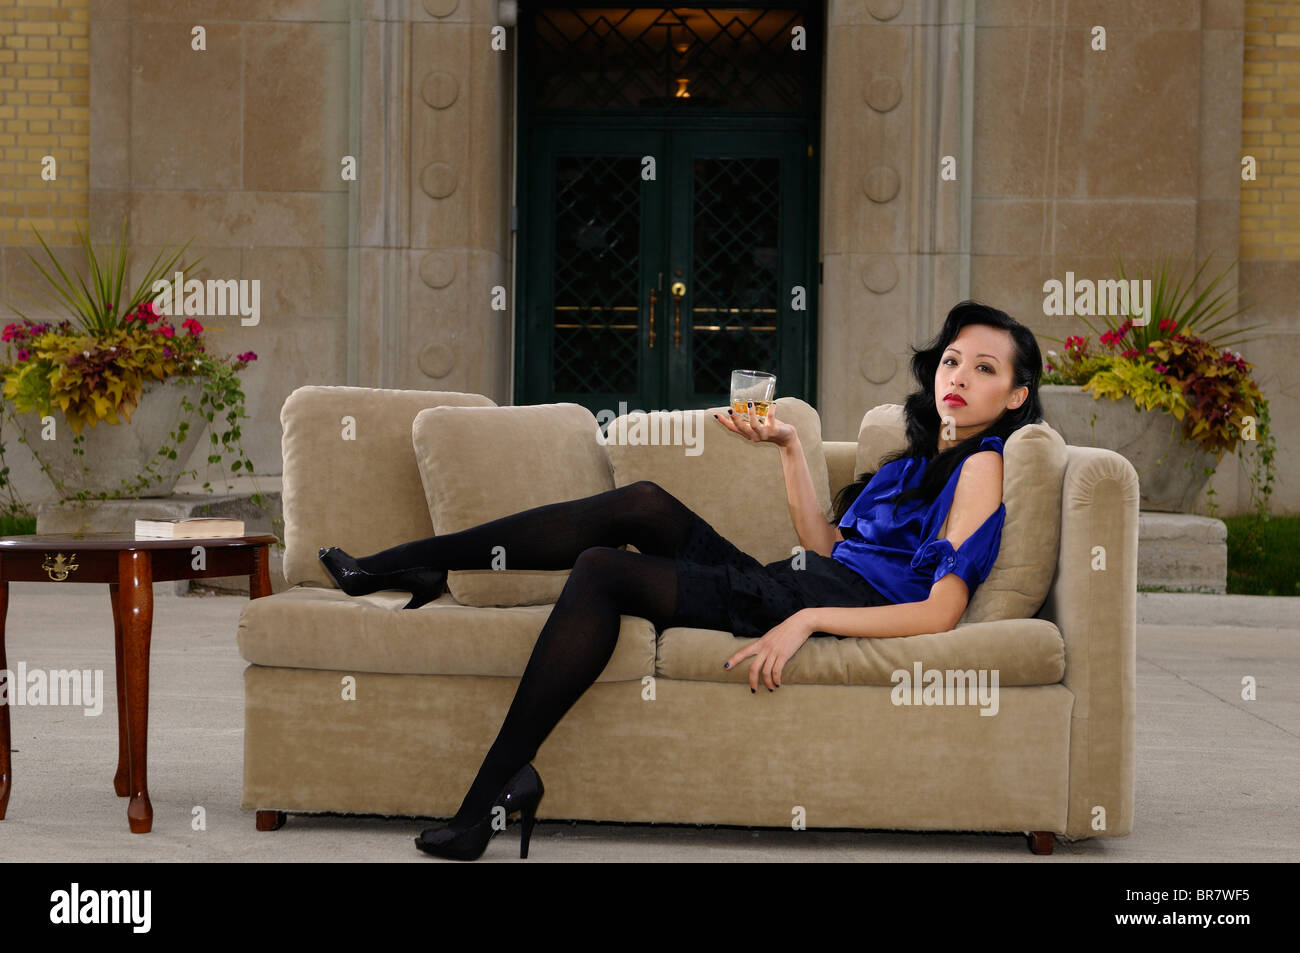 Attractive Asian woman reclining on a couch at an outdoor patio at an Art Deco mansion Harris Water Treatment Plant - Stock Image